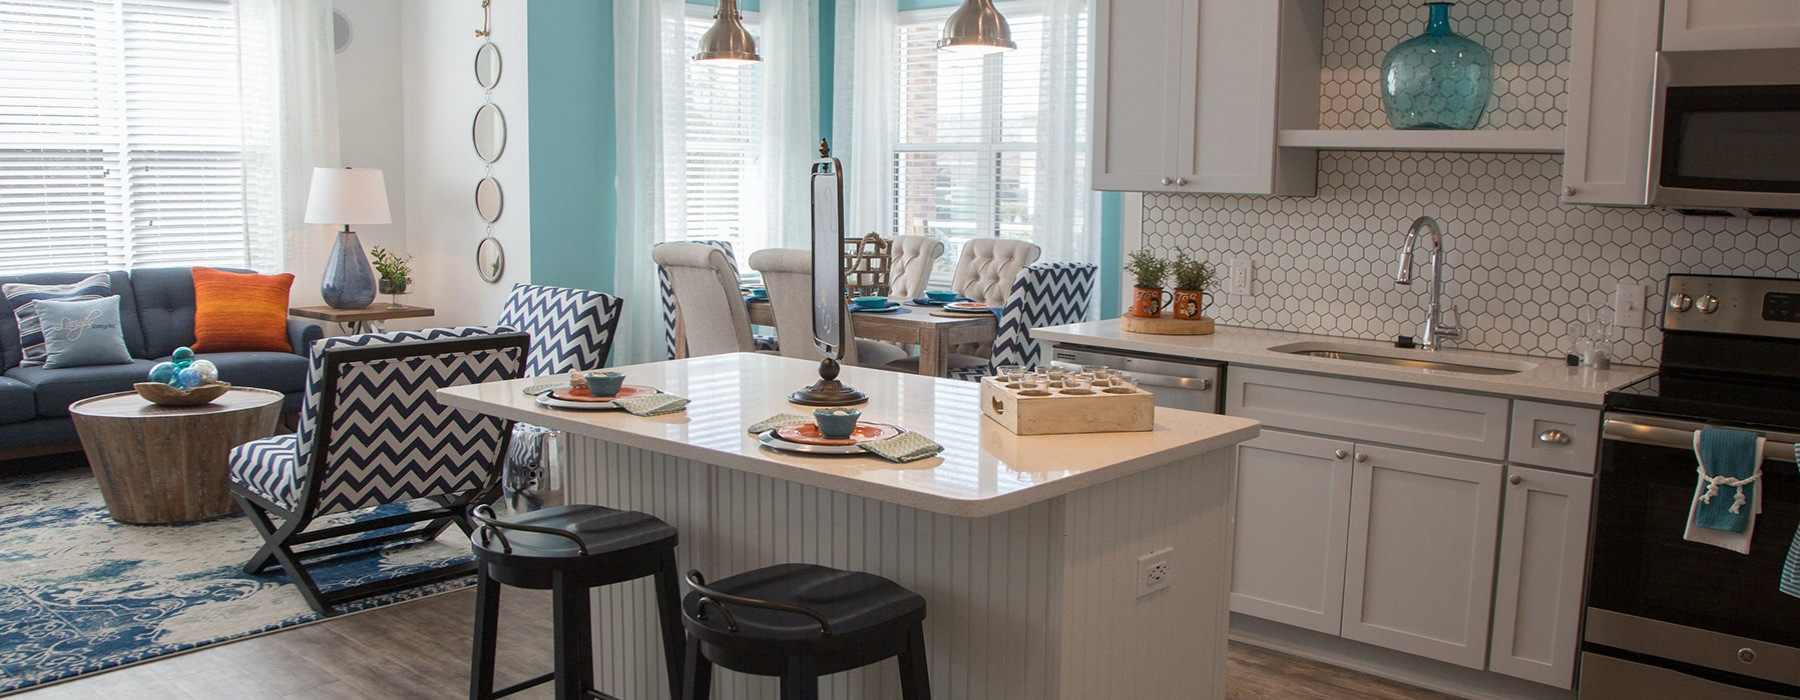 Costal kitchen, living, and dining space with large windows for lighting